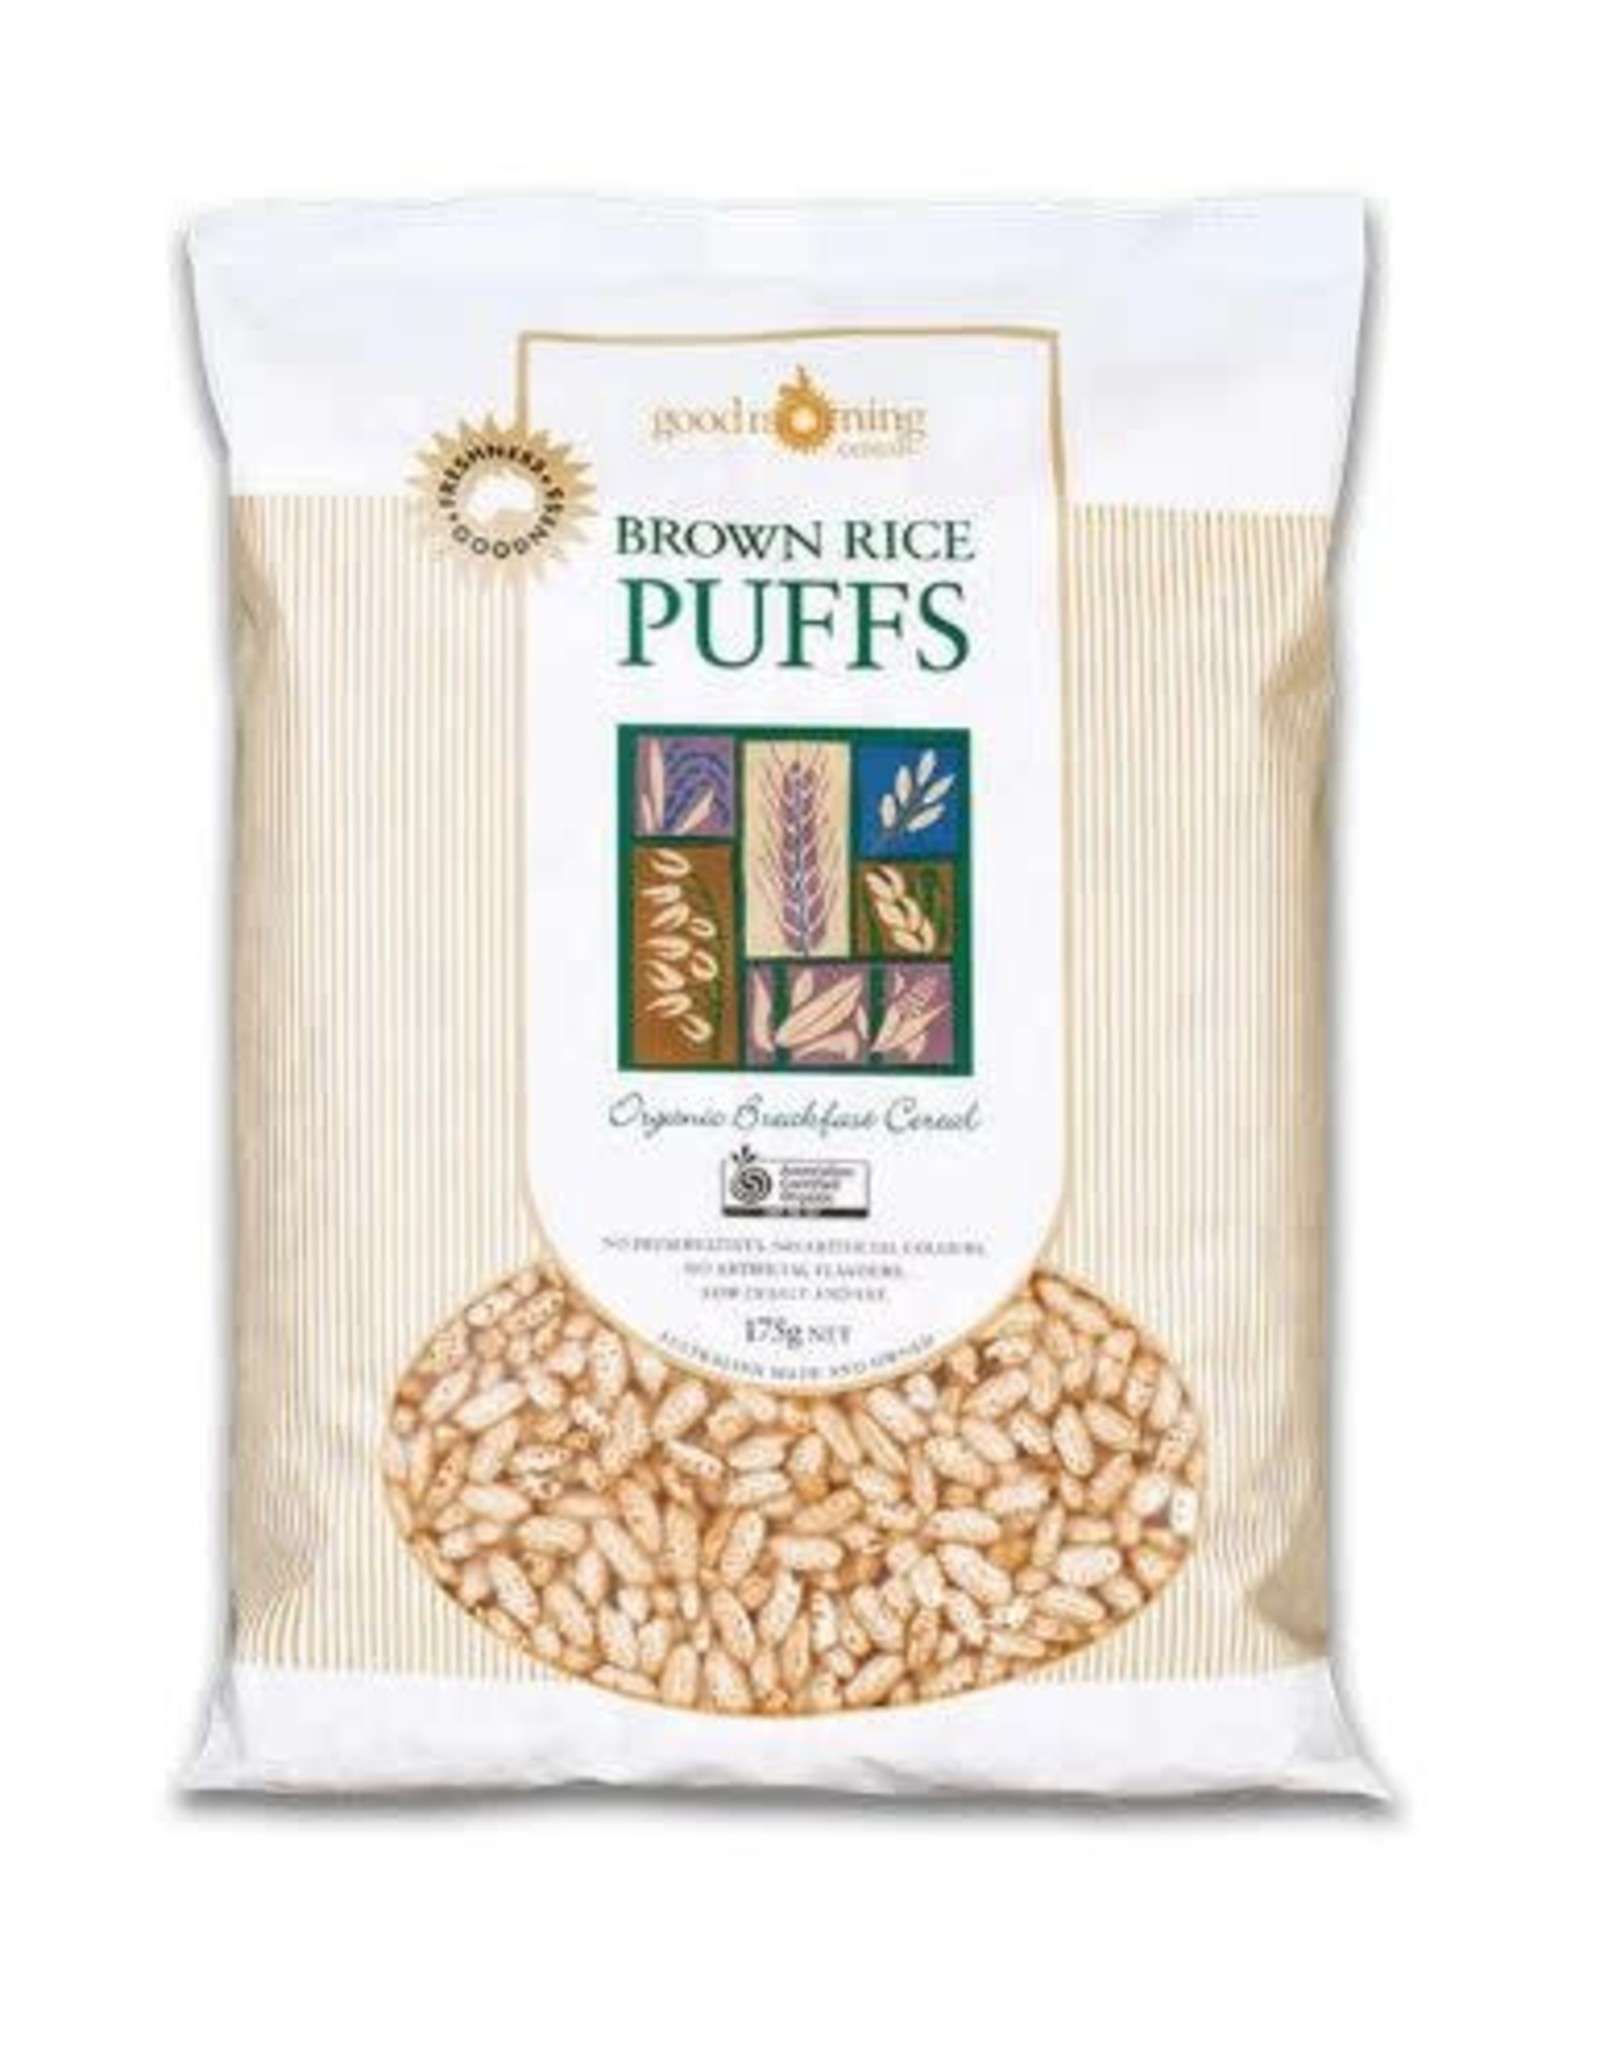 Good Morning Cereals Brown Rice Puffs 125g